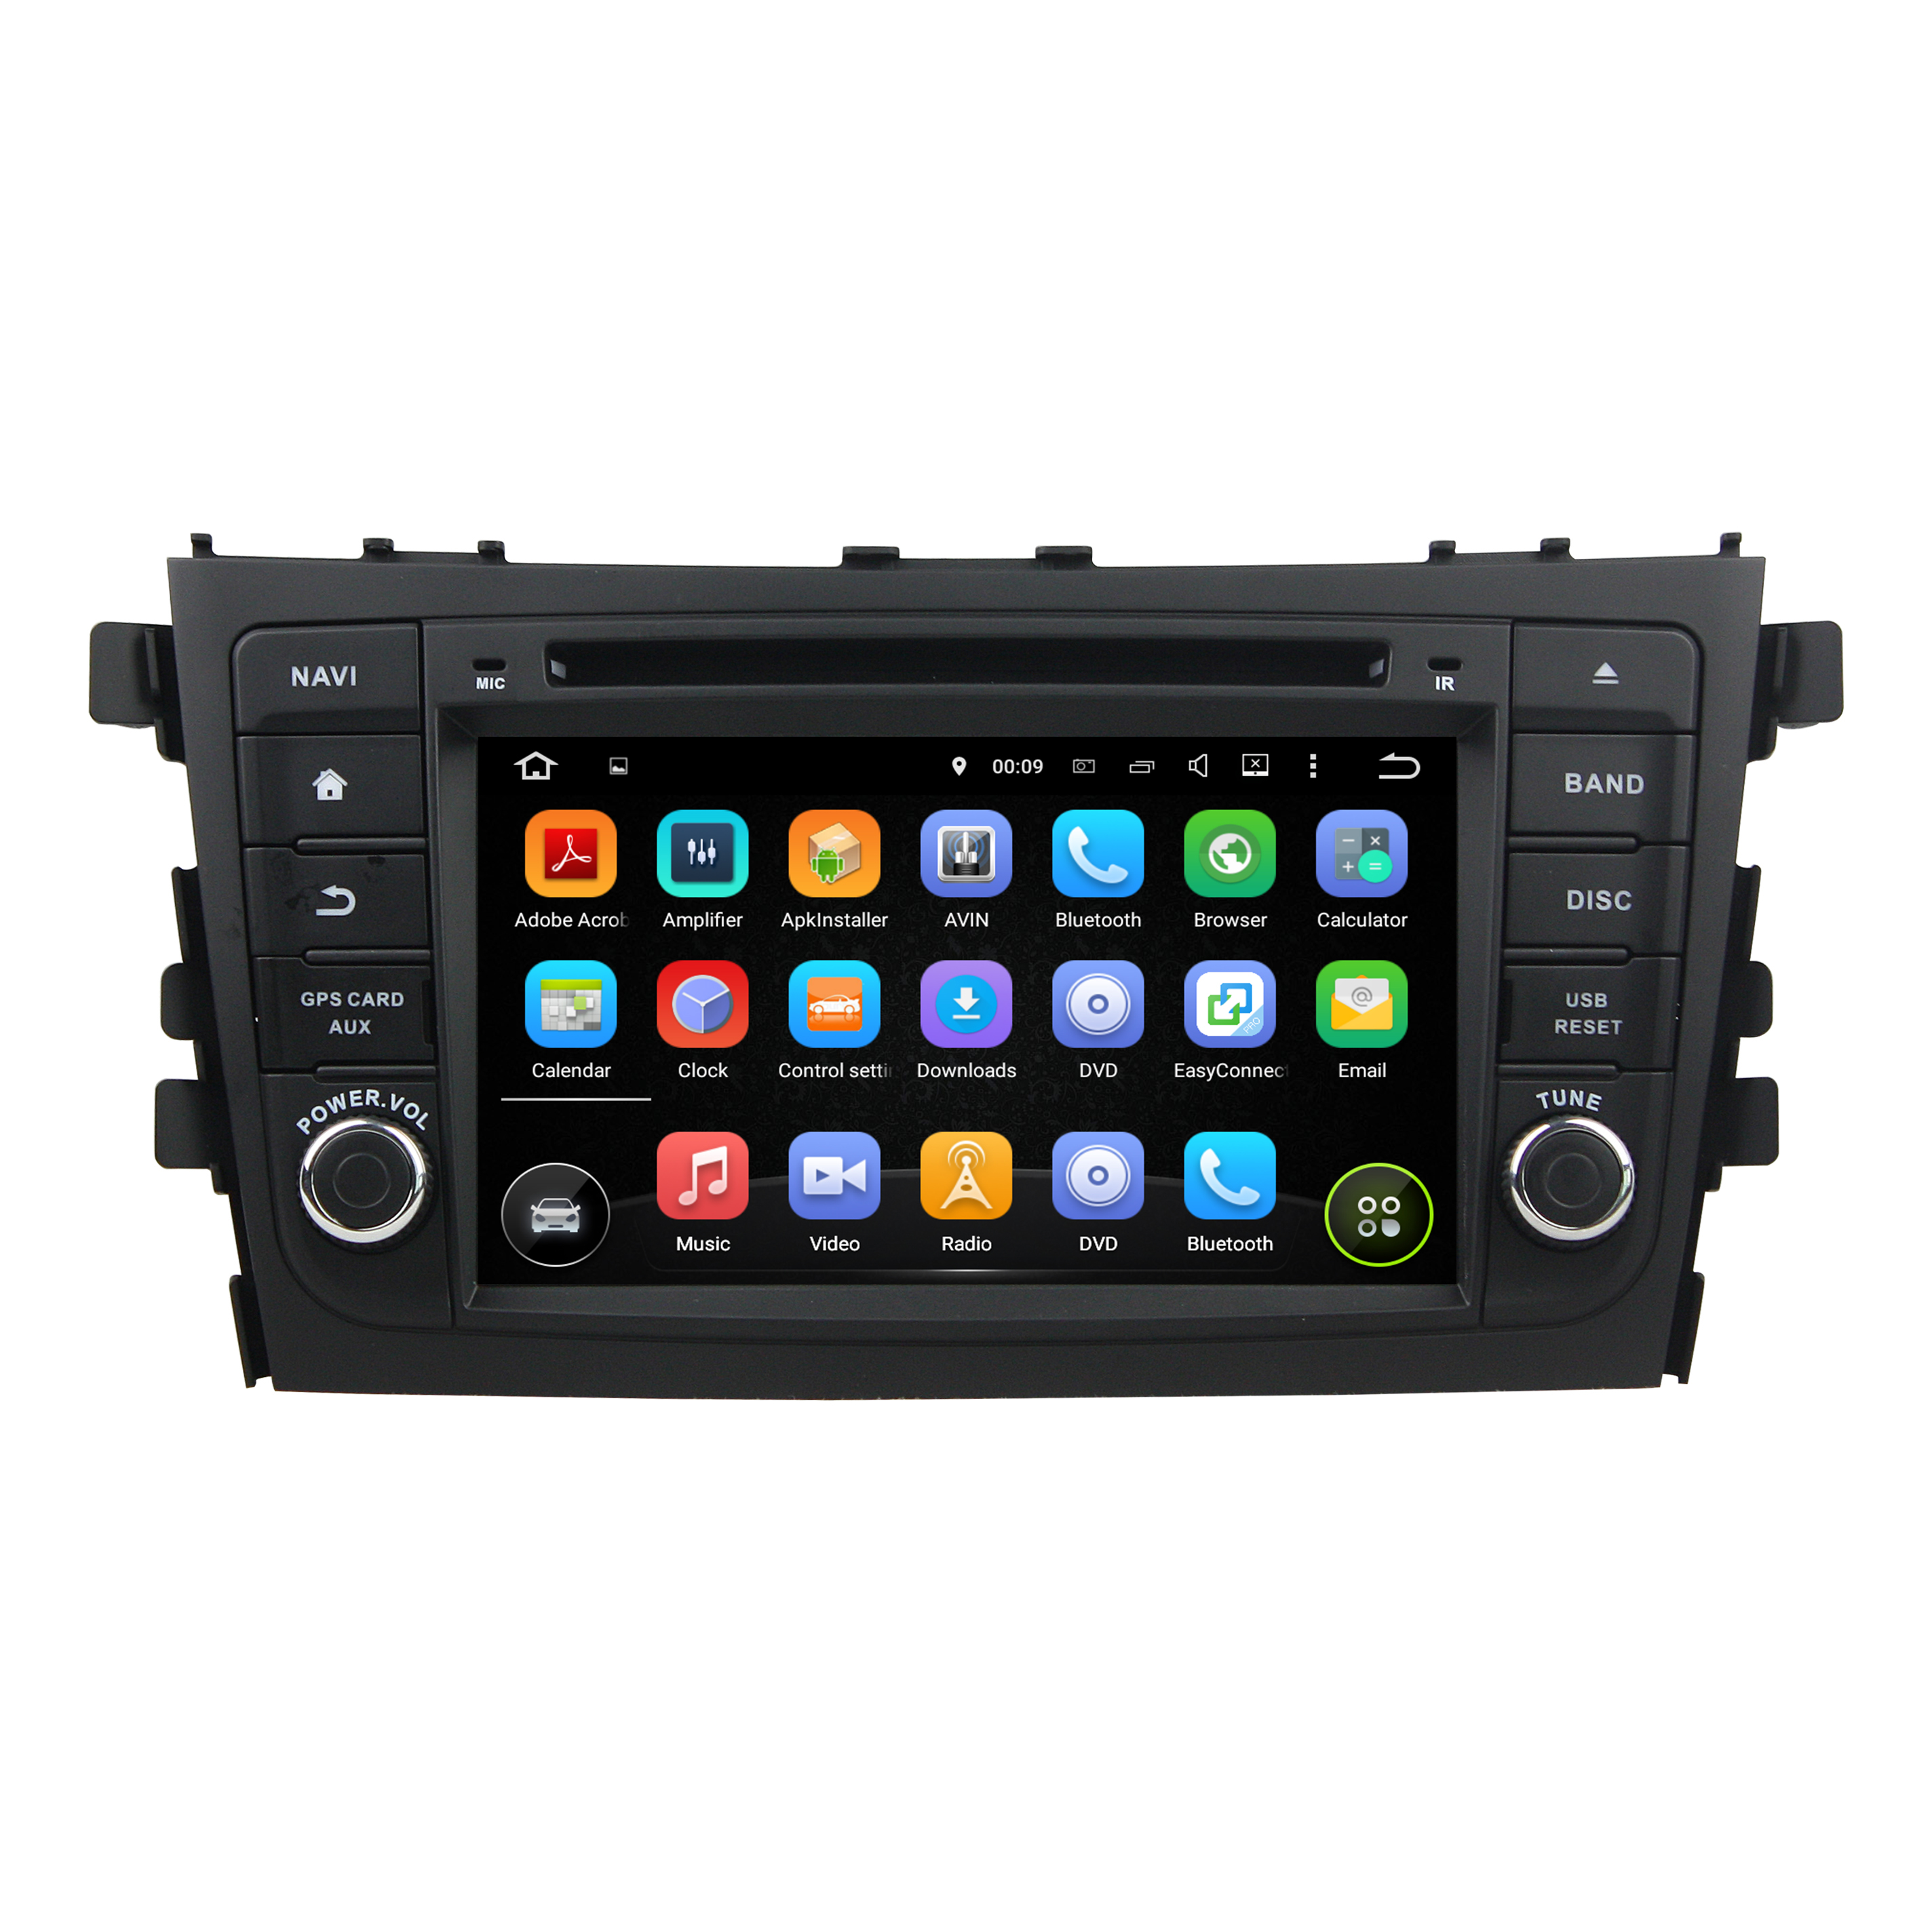 CELERIO 2015-2016 car dvd player for Suzuki series